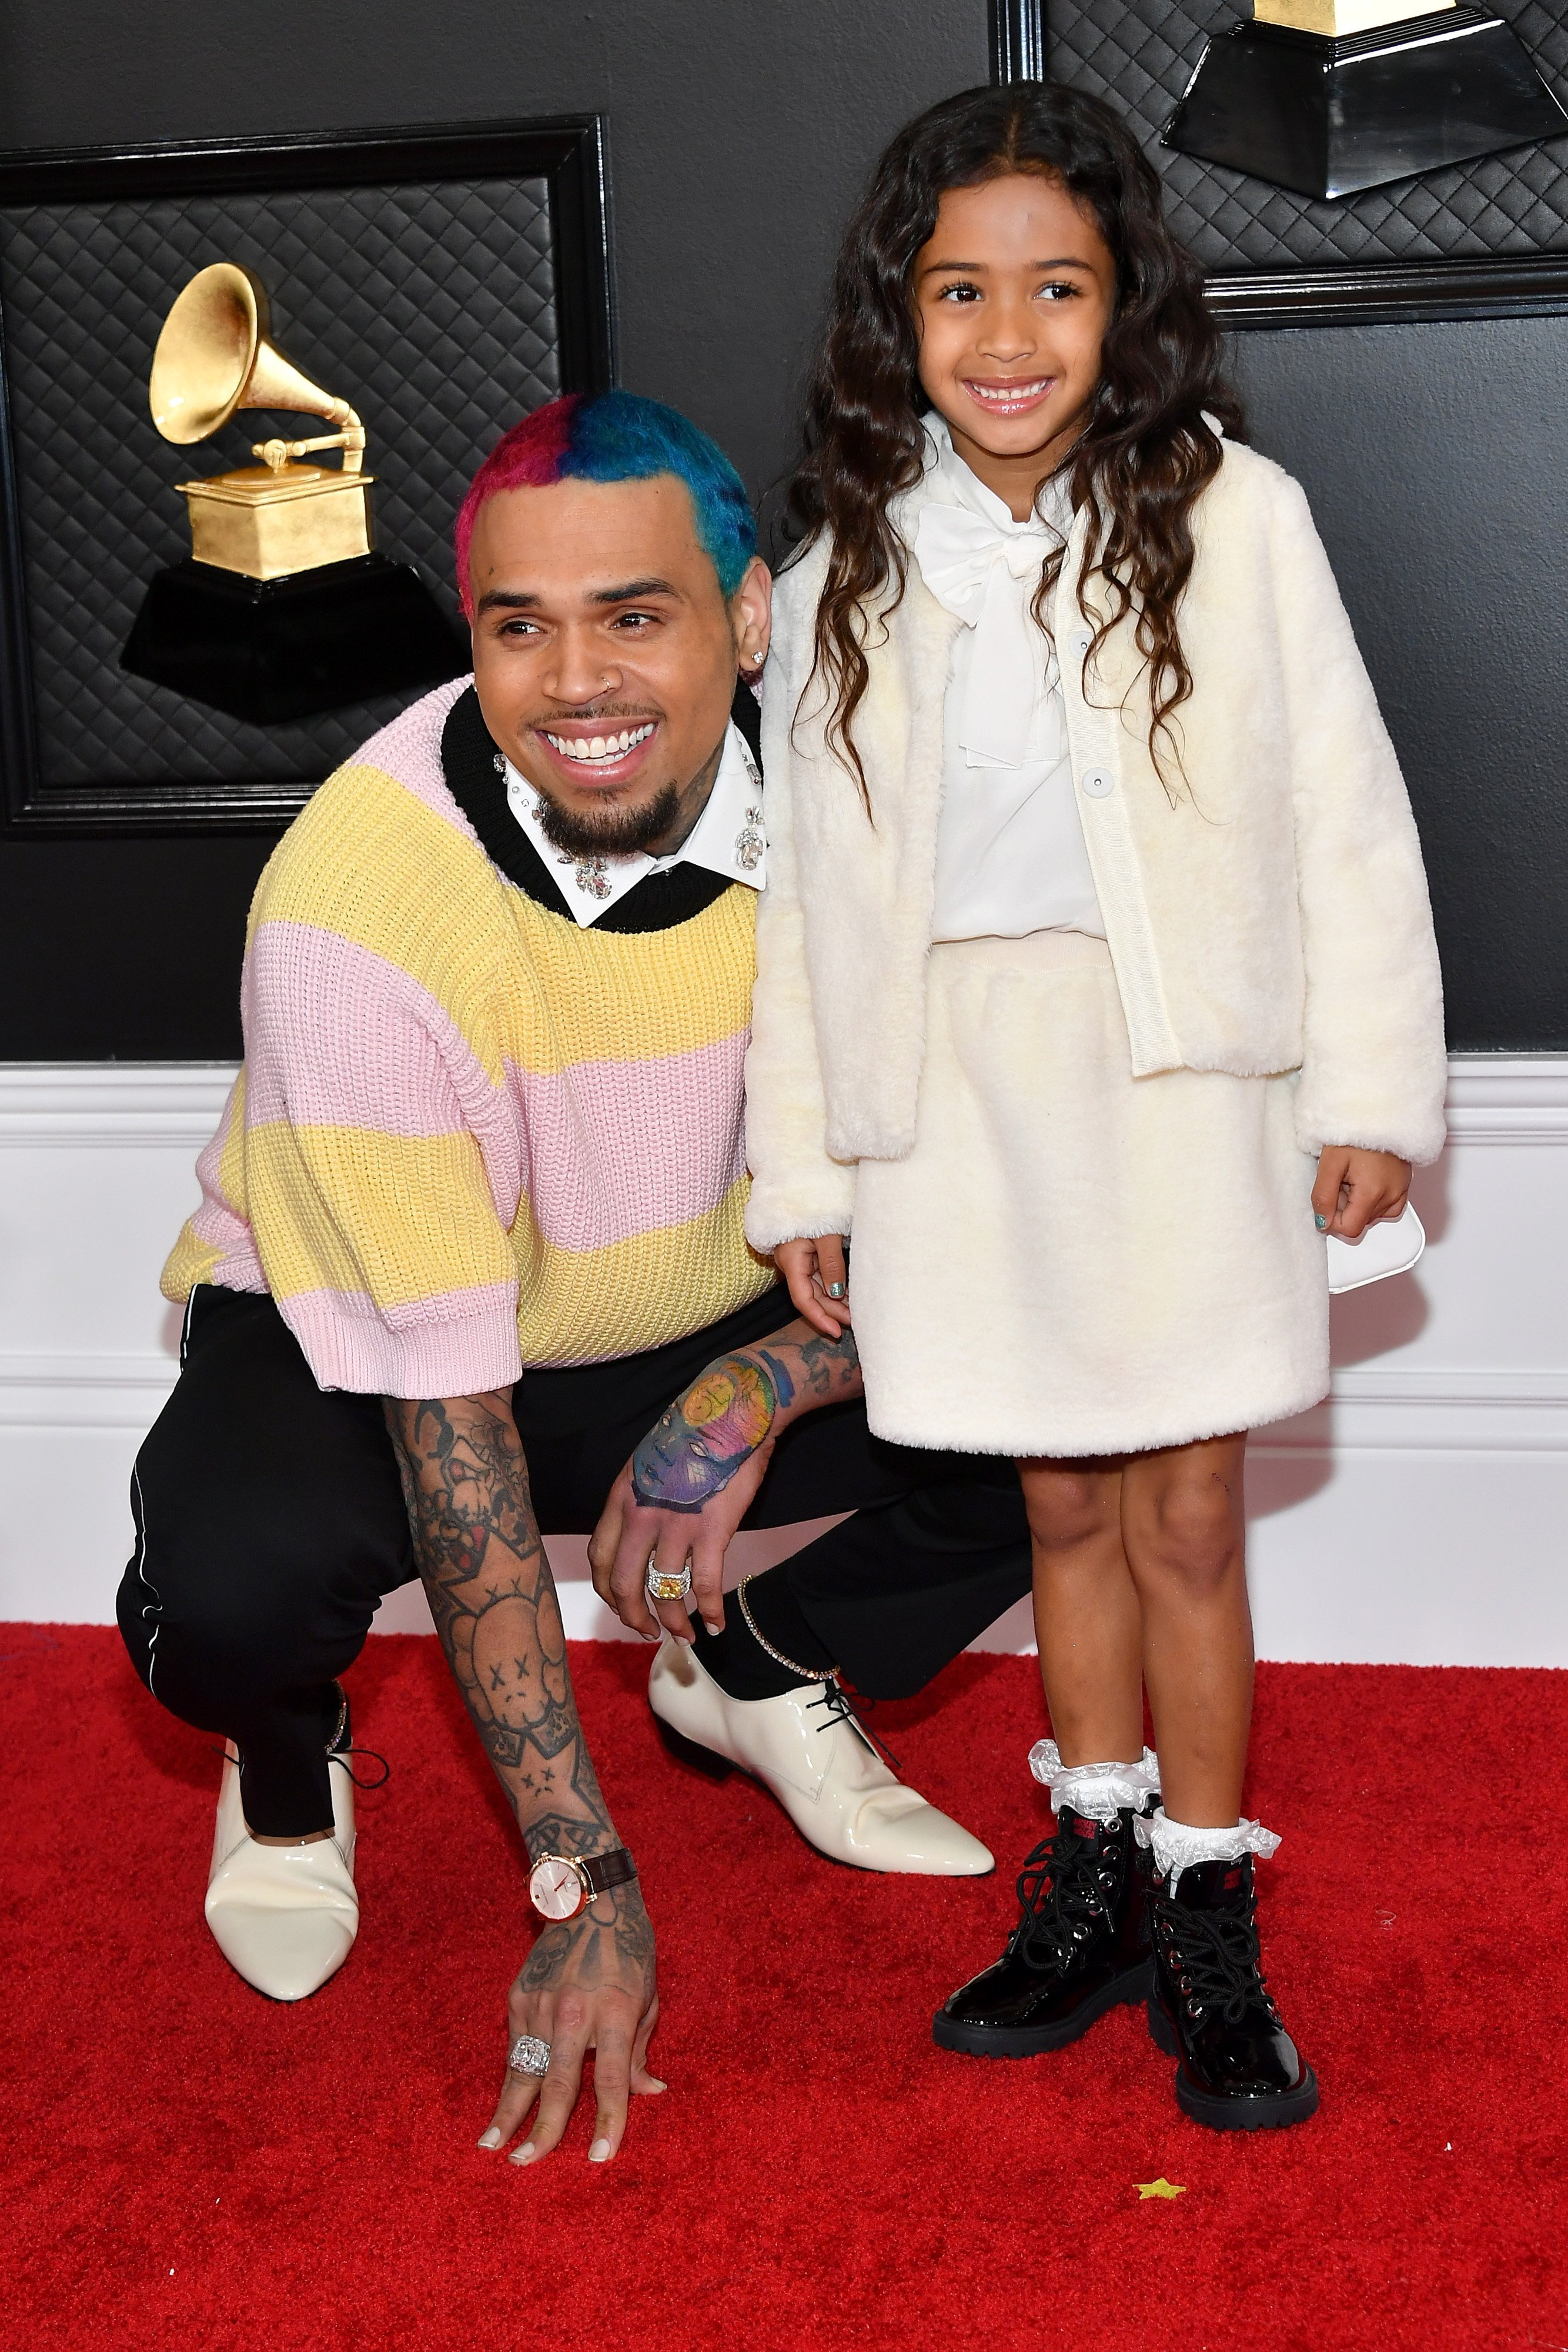 Chris Brown and his daughter, Royalty at the red carpet of the Grammy Awards in January 2020.   Photo: Getty Image